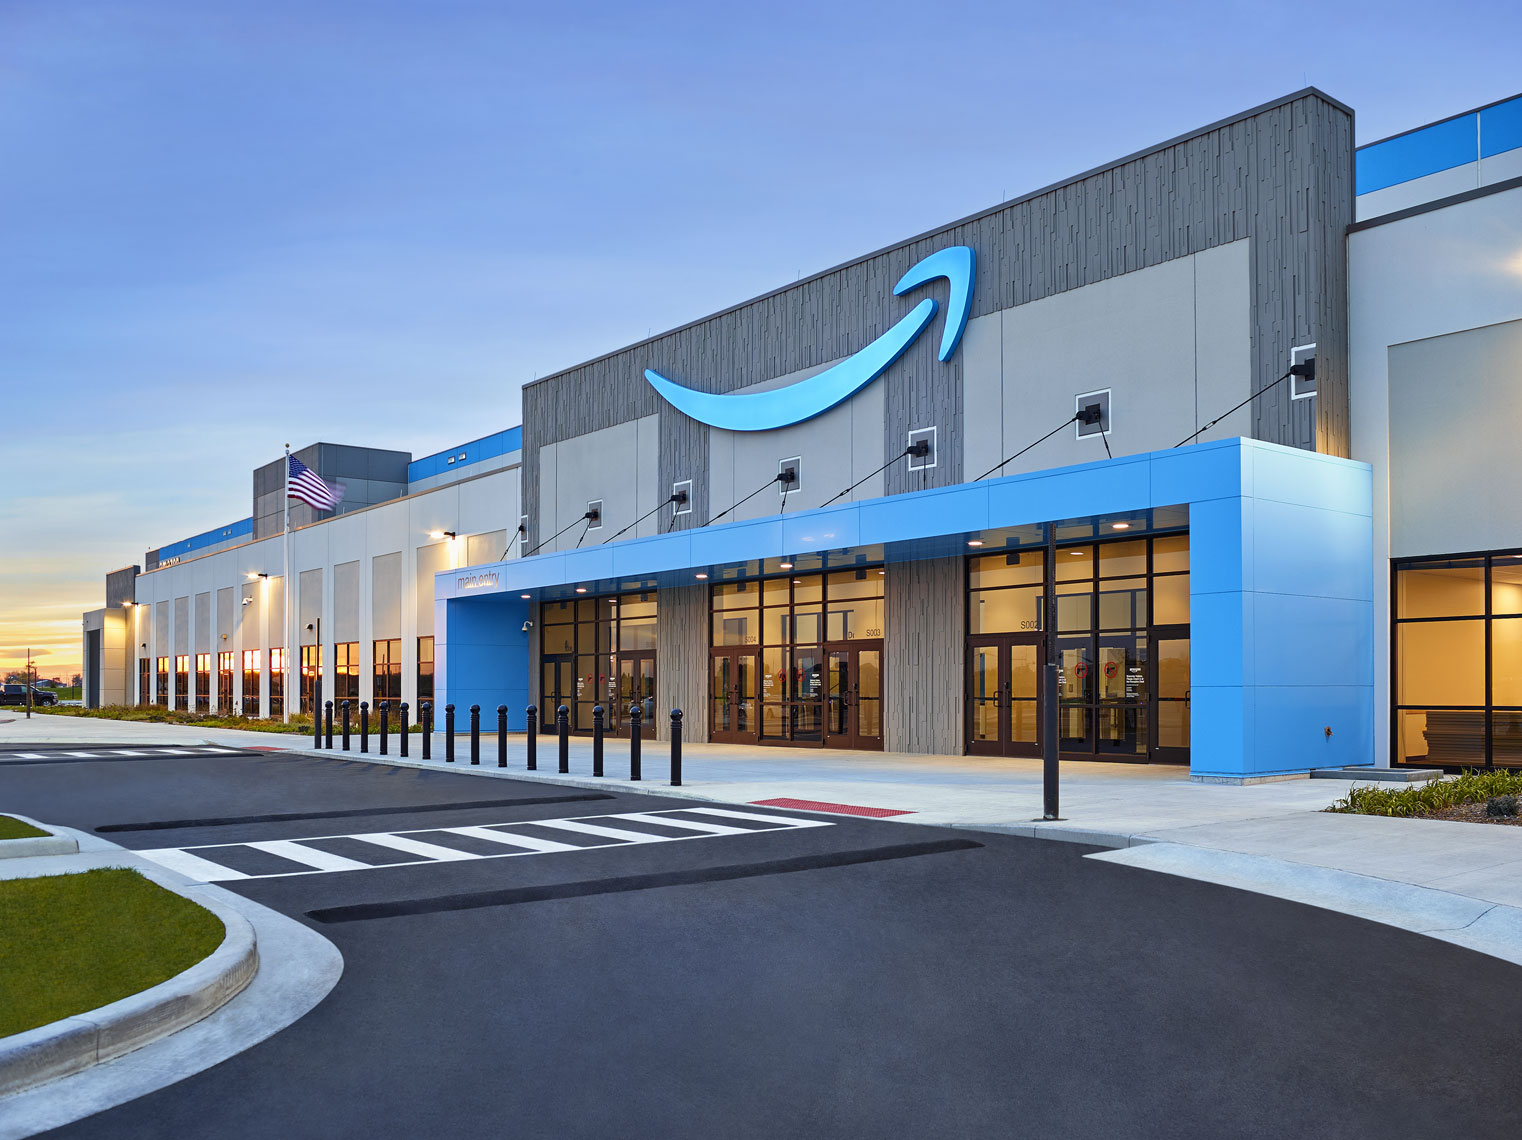 Amazon/exterior/blue/Ryan/Bond/architectural photography